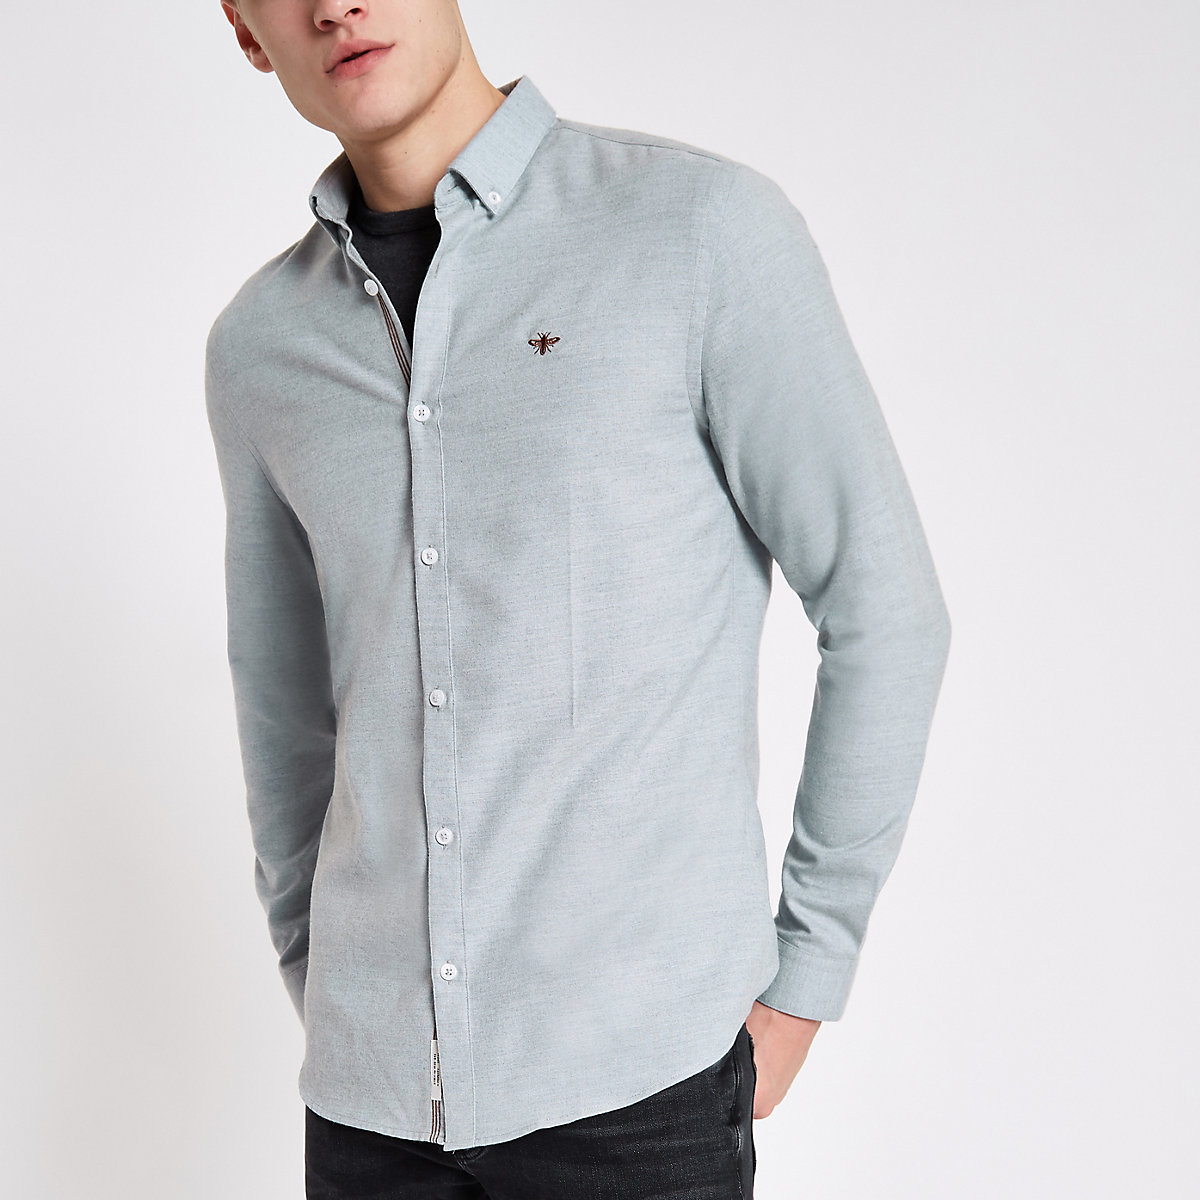 Grey wasp embroidered button-down shirt